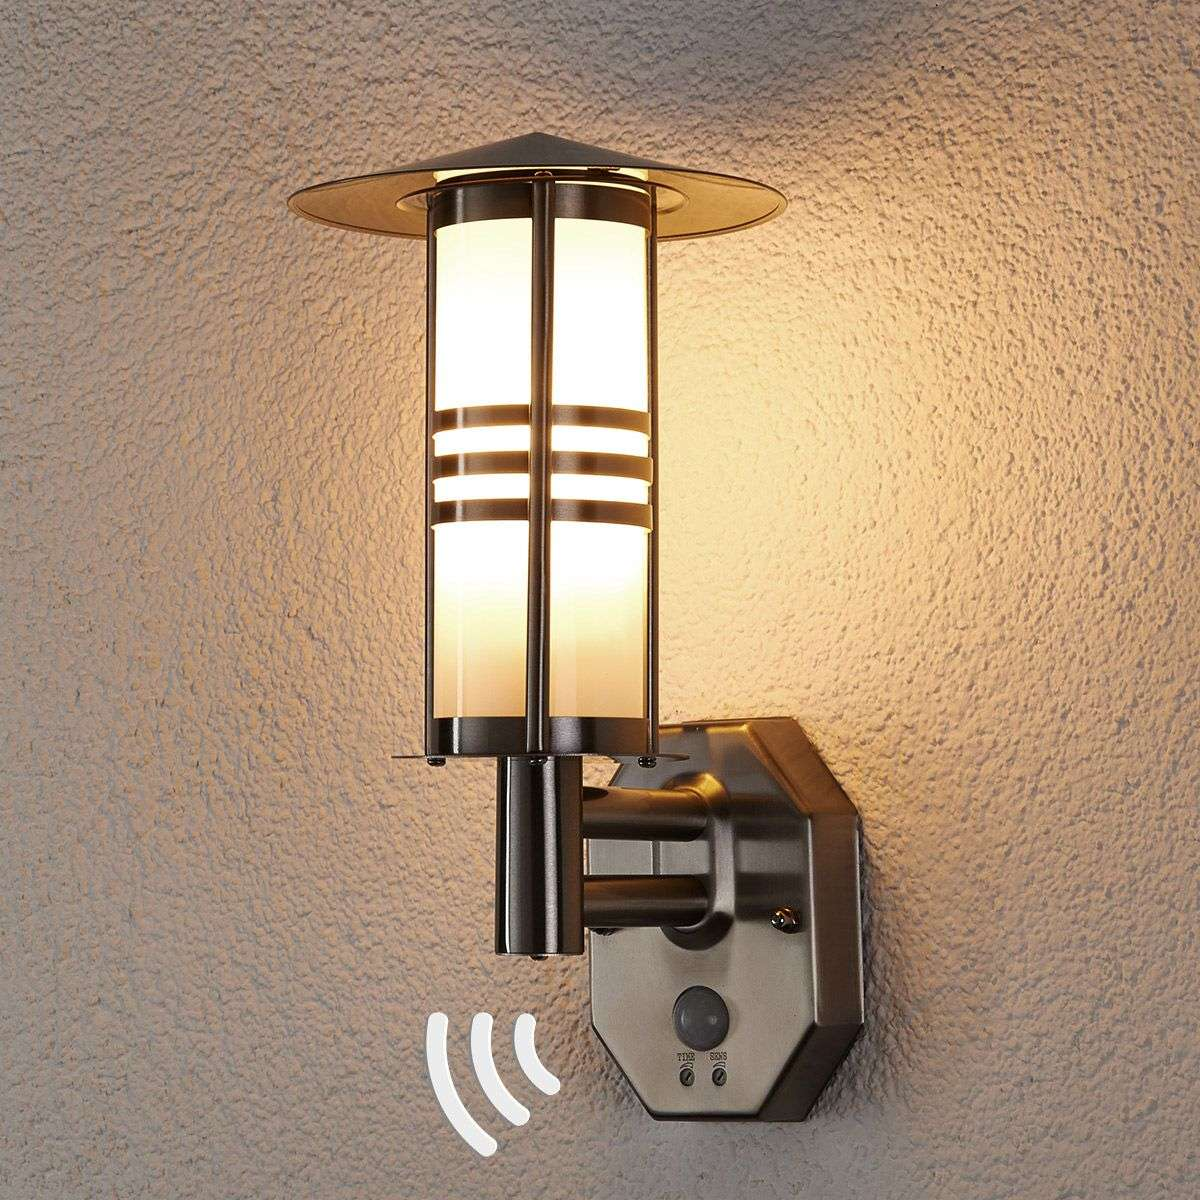 Erina Motion Detector Outdoor Wall Lamp-9960014-31